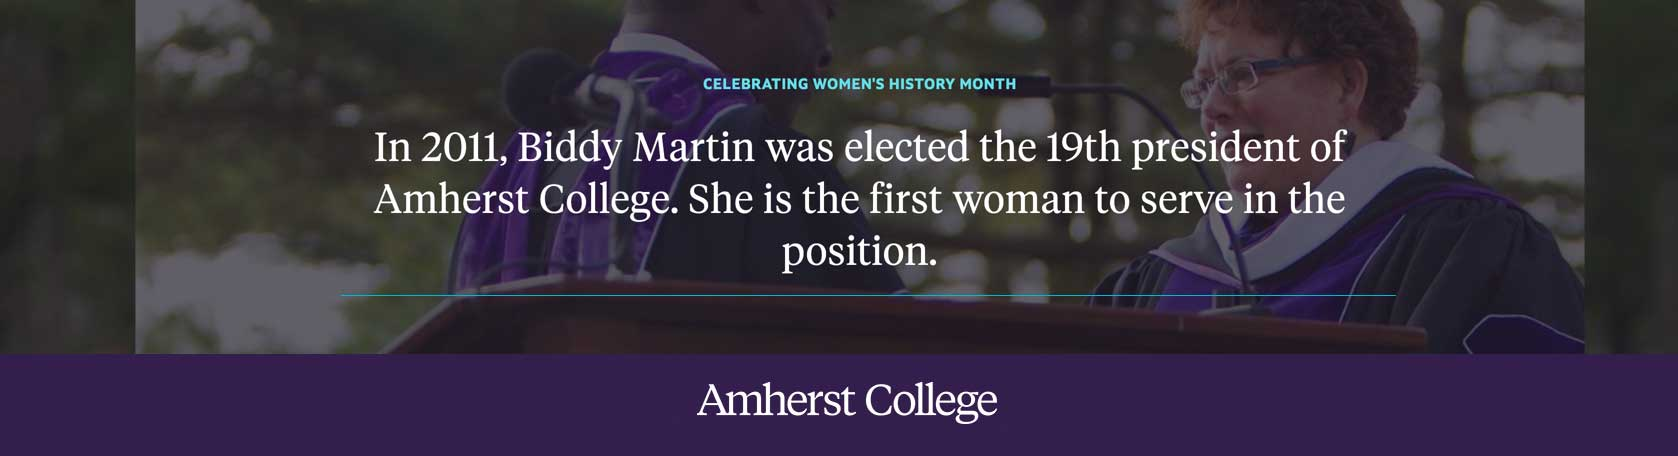 In 2011, Biddy Martin was elected as the 19th president of Amherst College and the first woman to serve as president